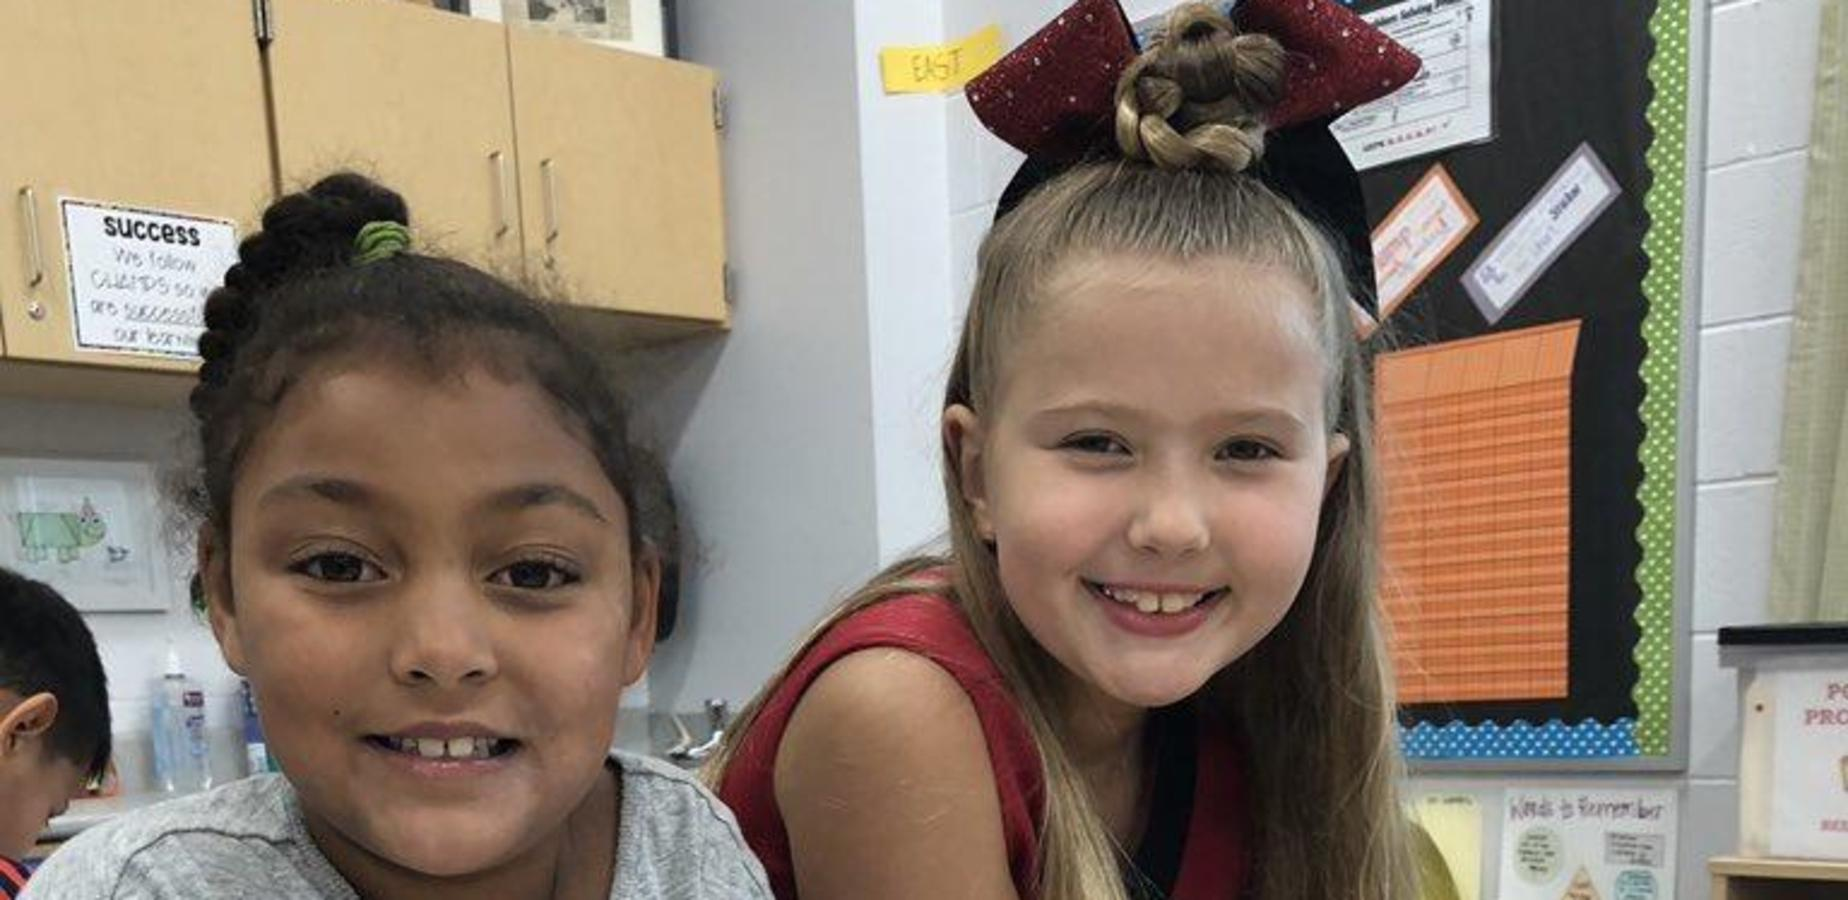 Photo of two girls at Compass Elementary who are smiling.  They are part of the Compass Buddies program which pairs older students with younger ones.